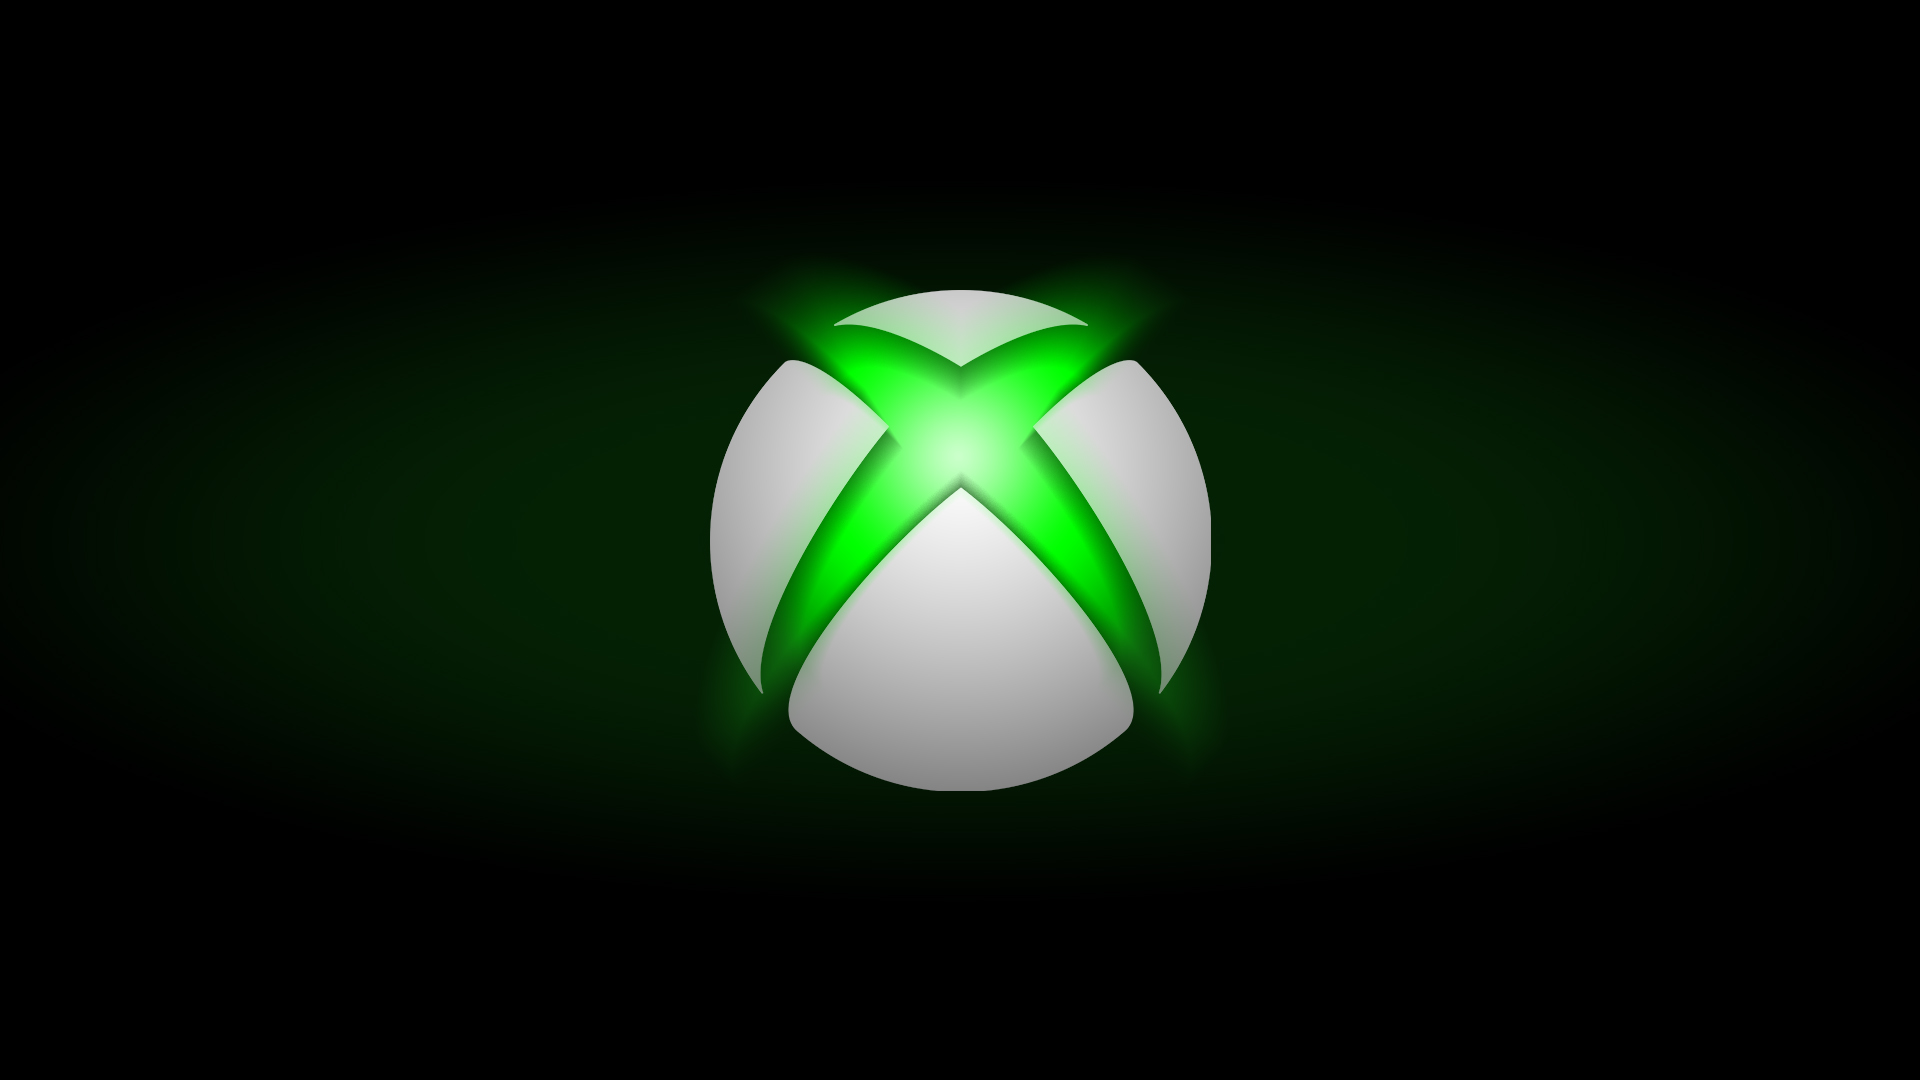 Xbox Wallpapers HD